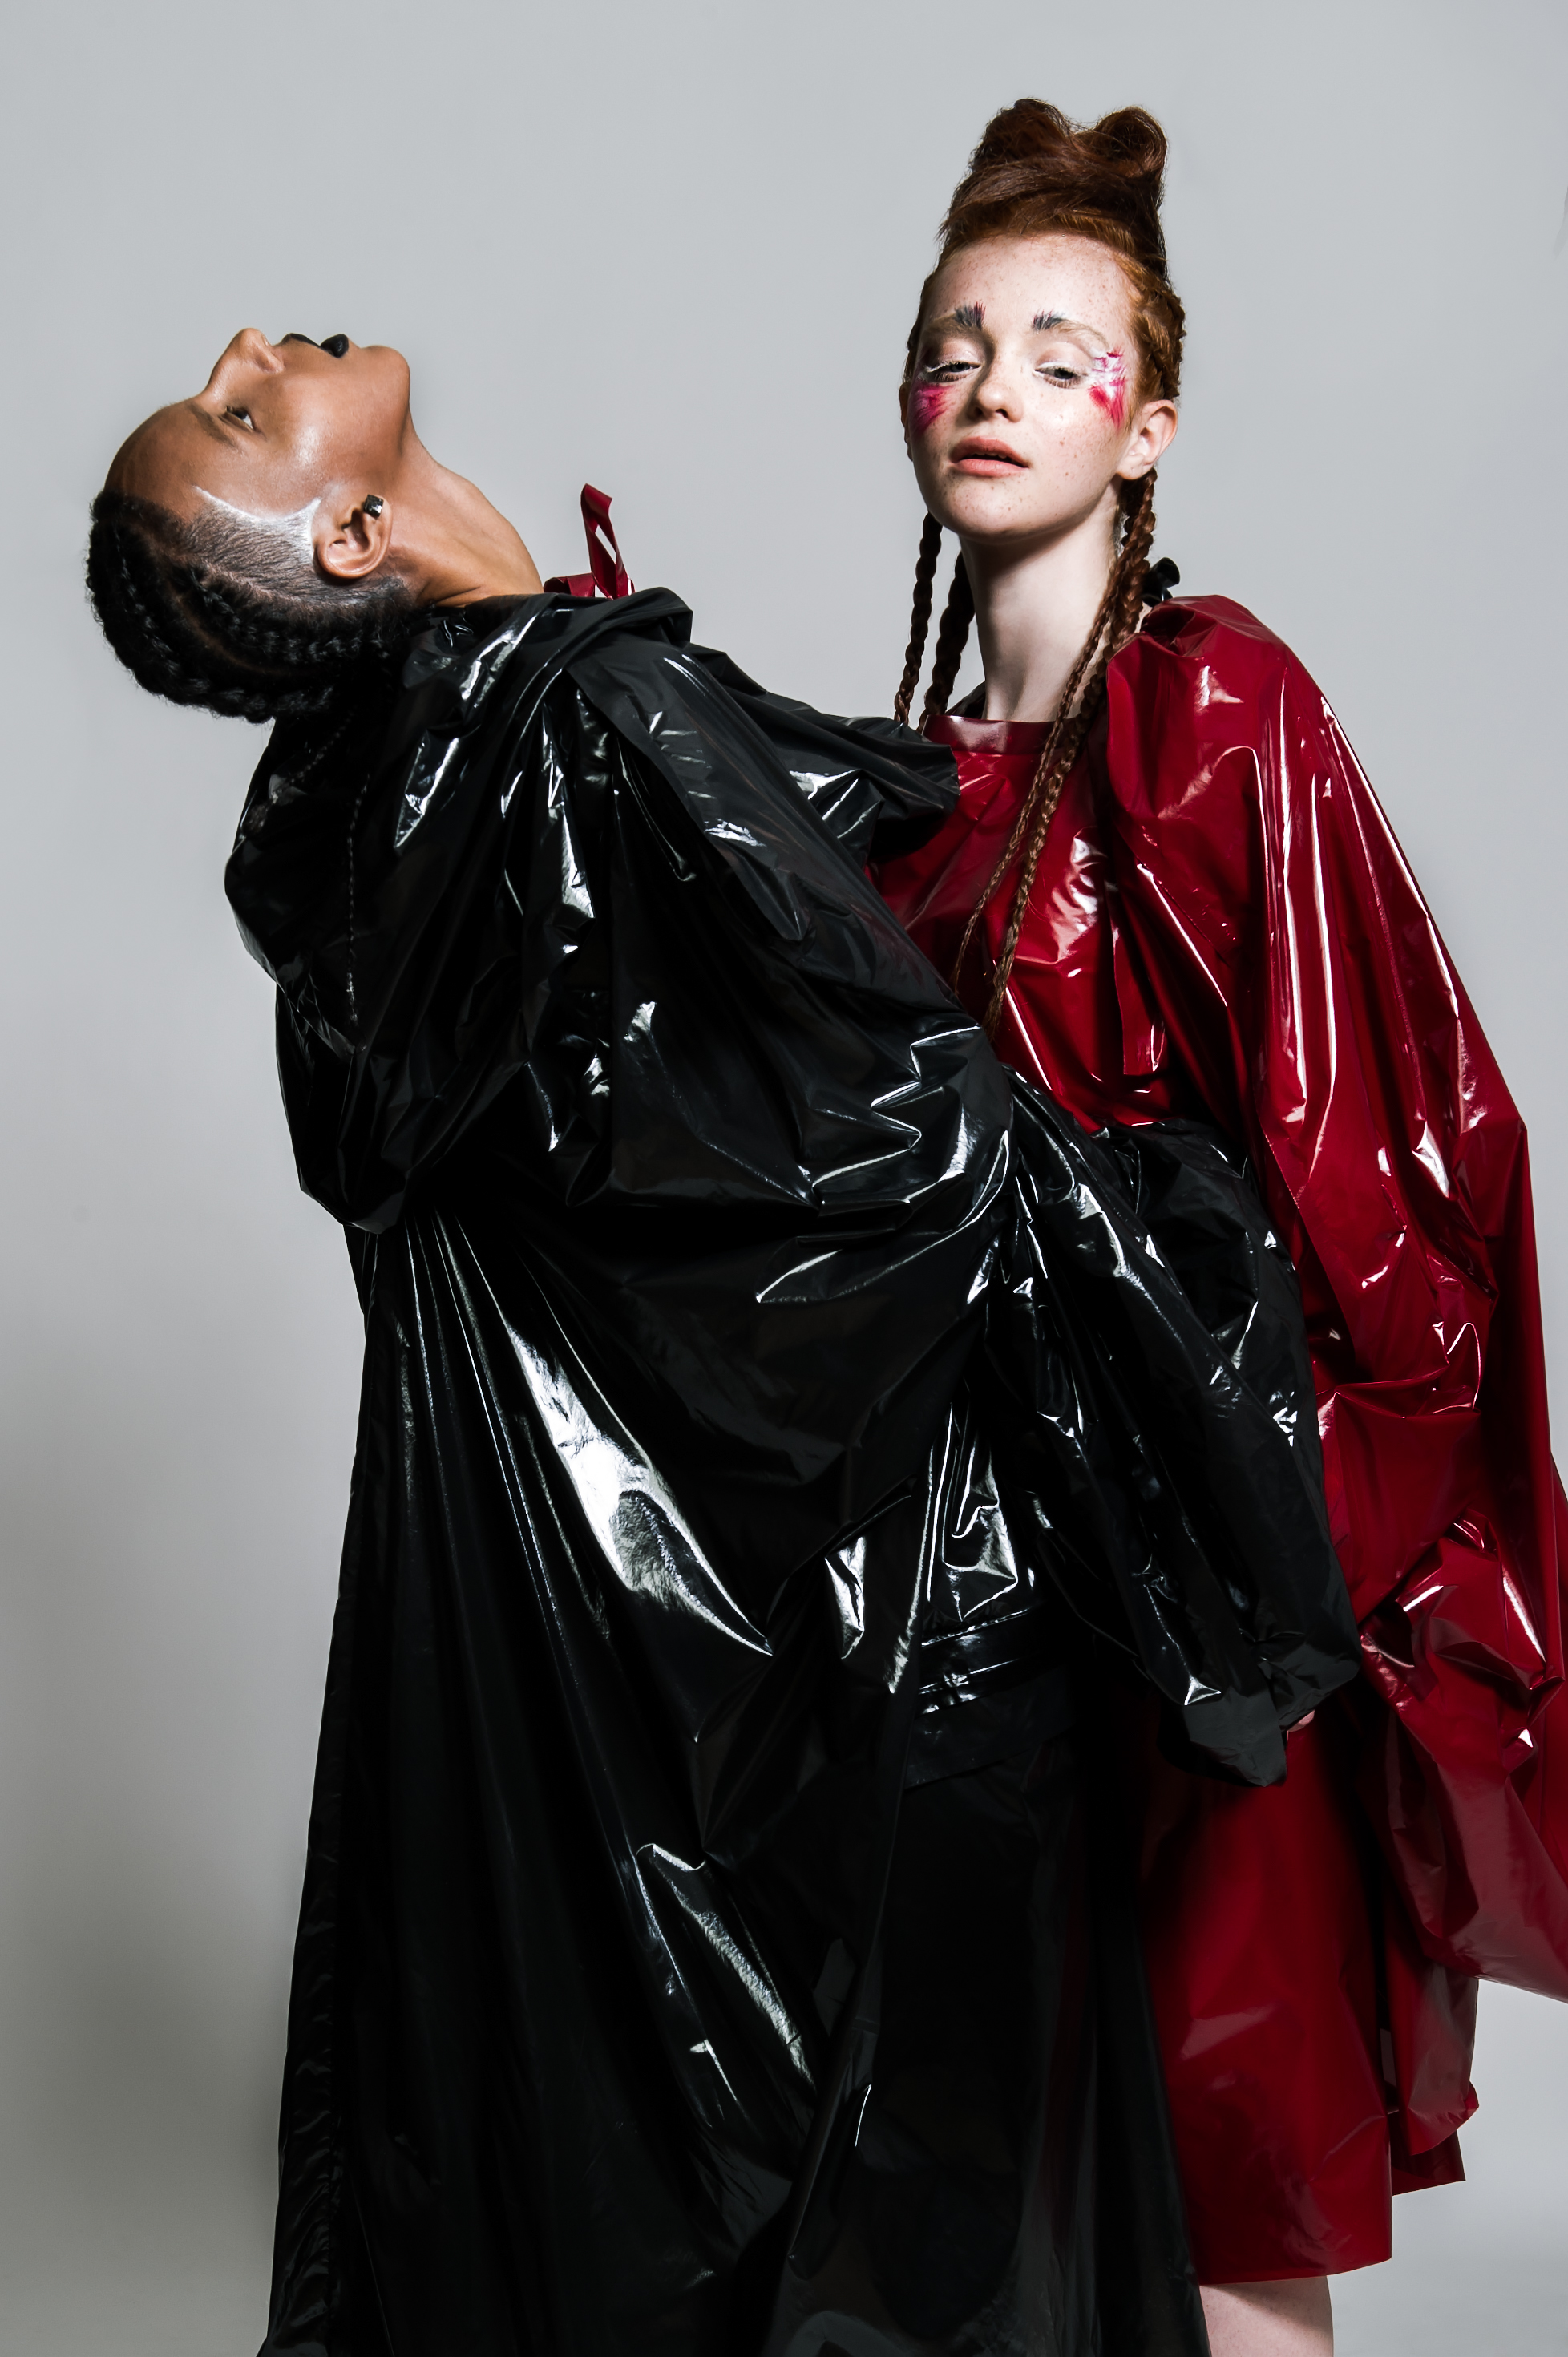 Lindefini Trash Editorial by Choi David